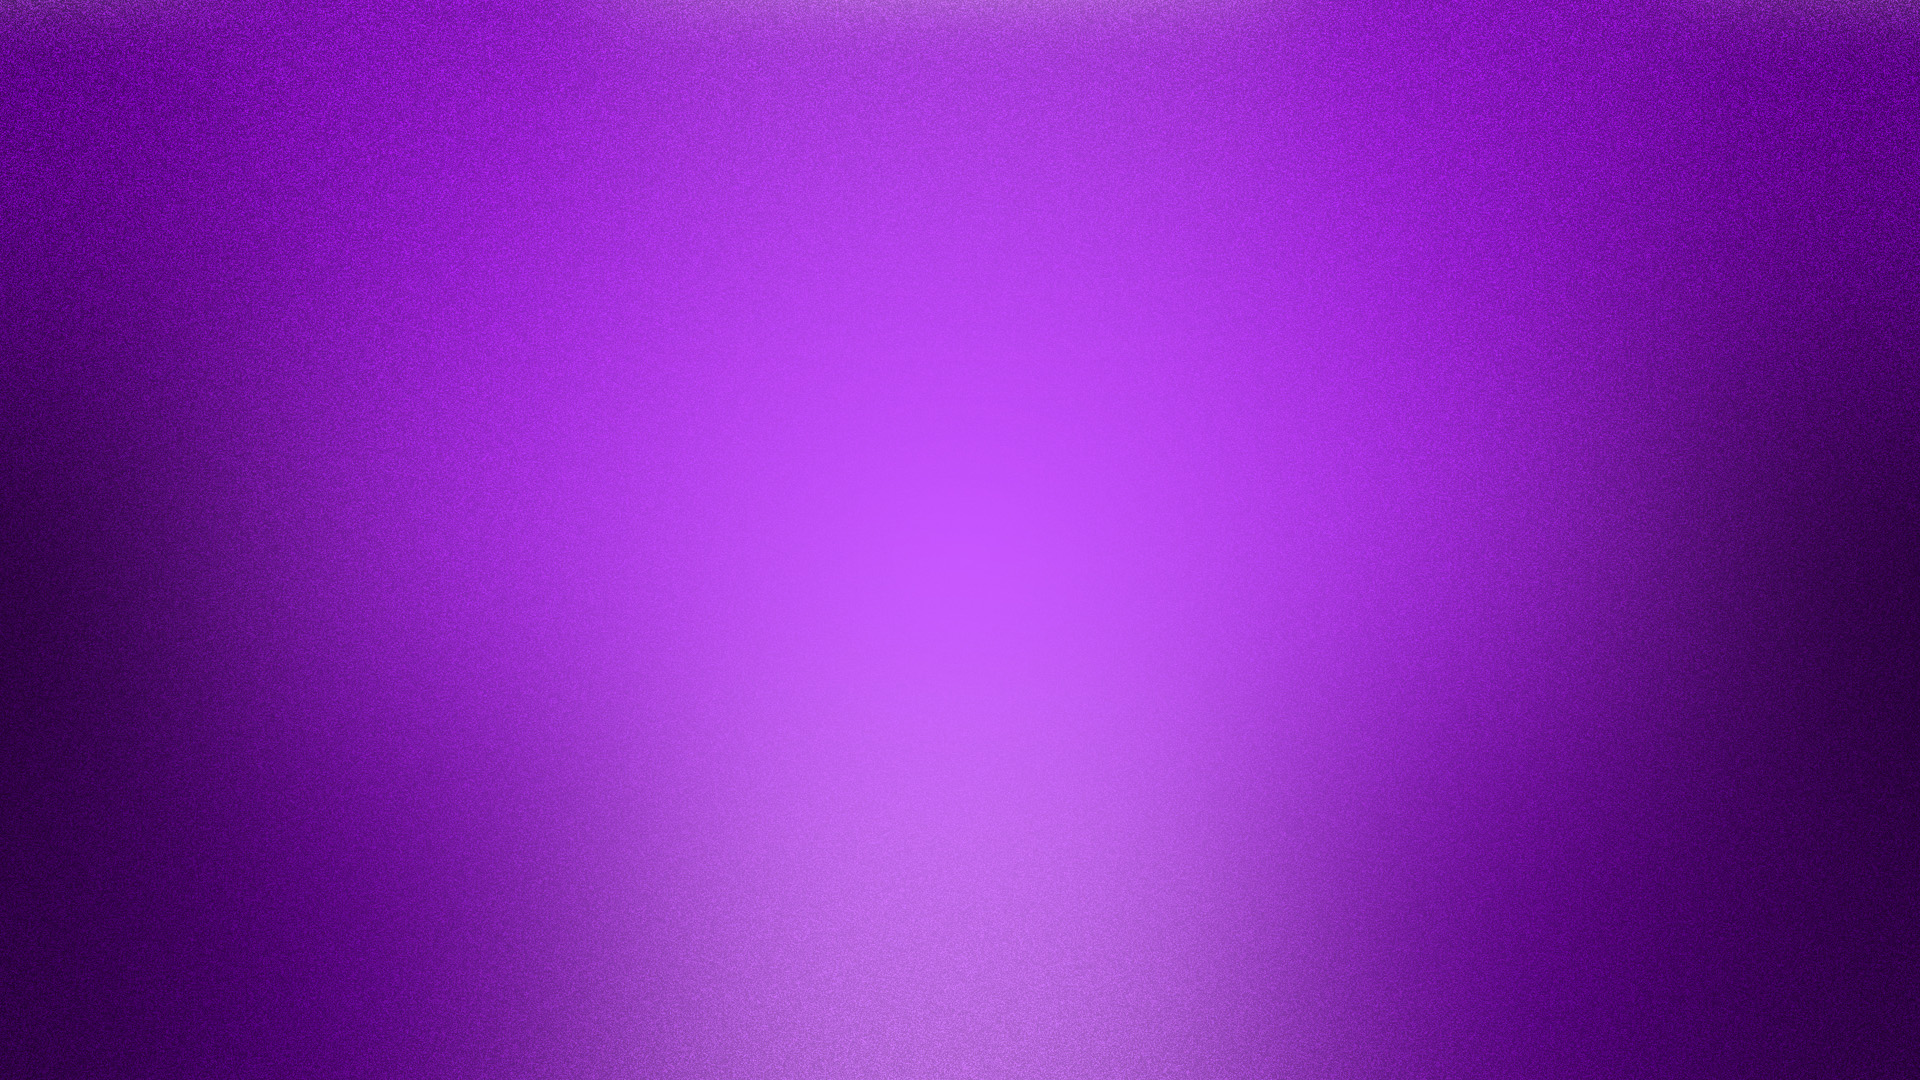 blue and purple abstract wallpaper wallpapersafari